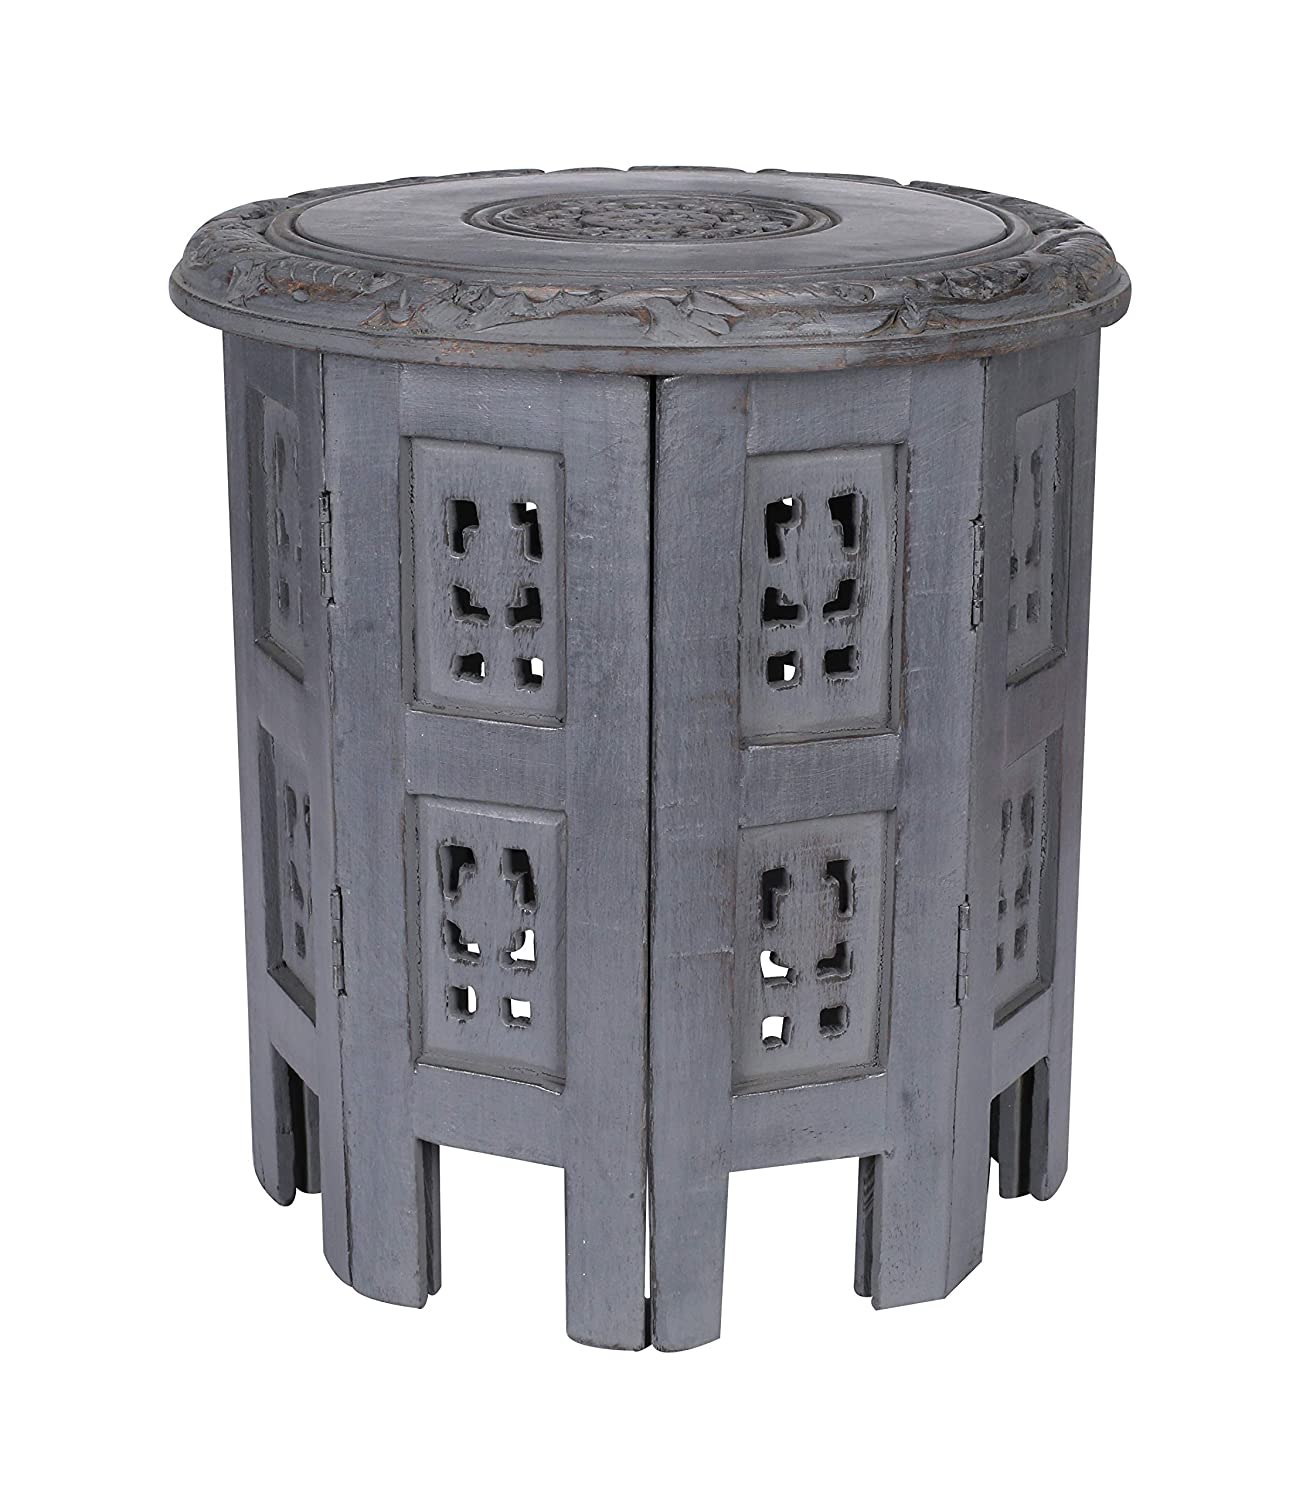 Solid Wood Hand Carved Accent Table, Decorative Small Wooden Coffee Side Table, Entryway Table, Wooden End Table, Bedside Table, Octagonal Wooden Table - 12 Inch Round Top x 12 Inch High -Dark Grey